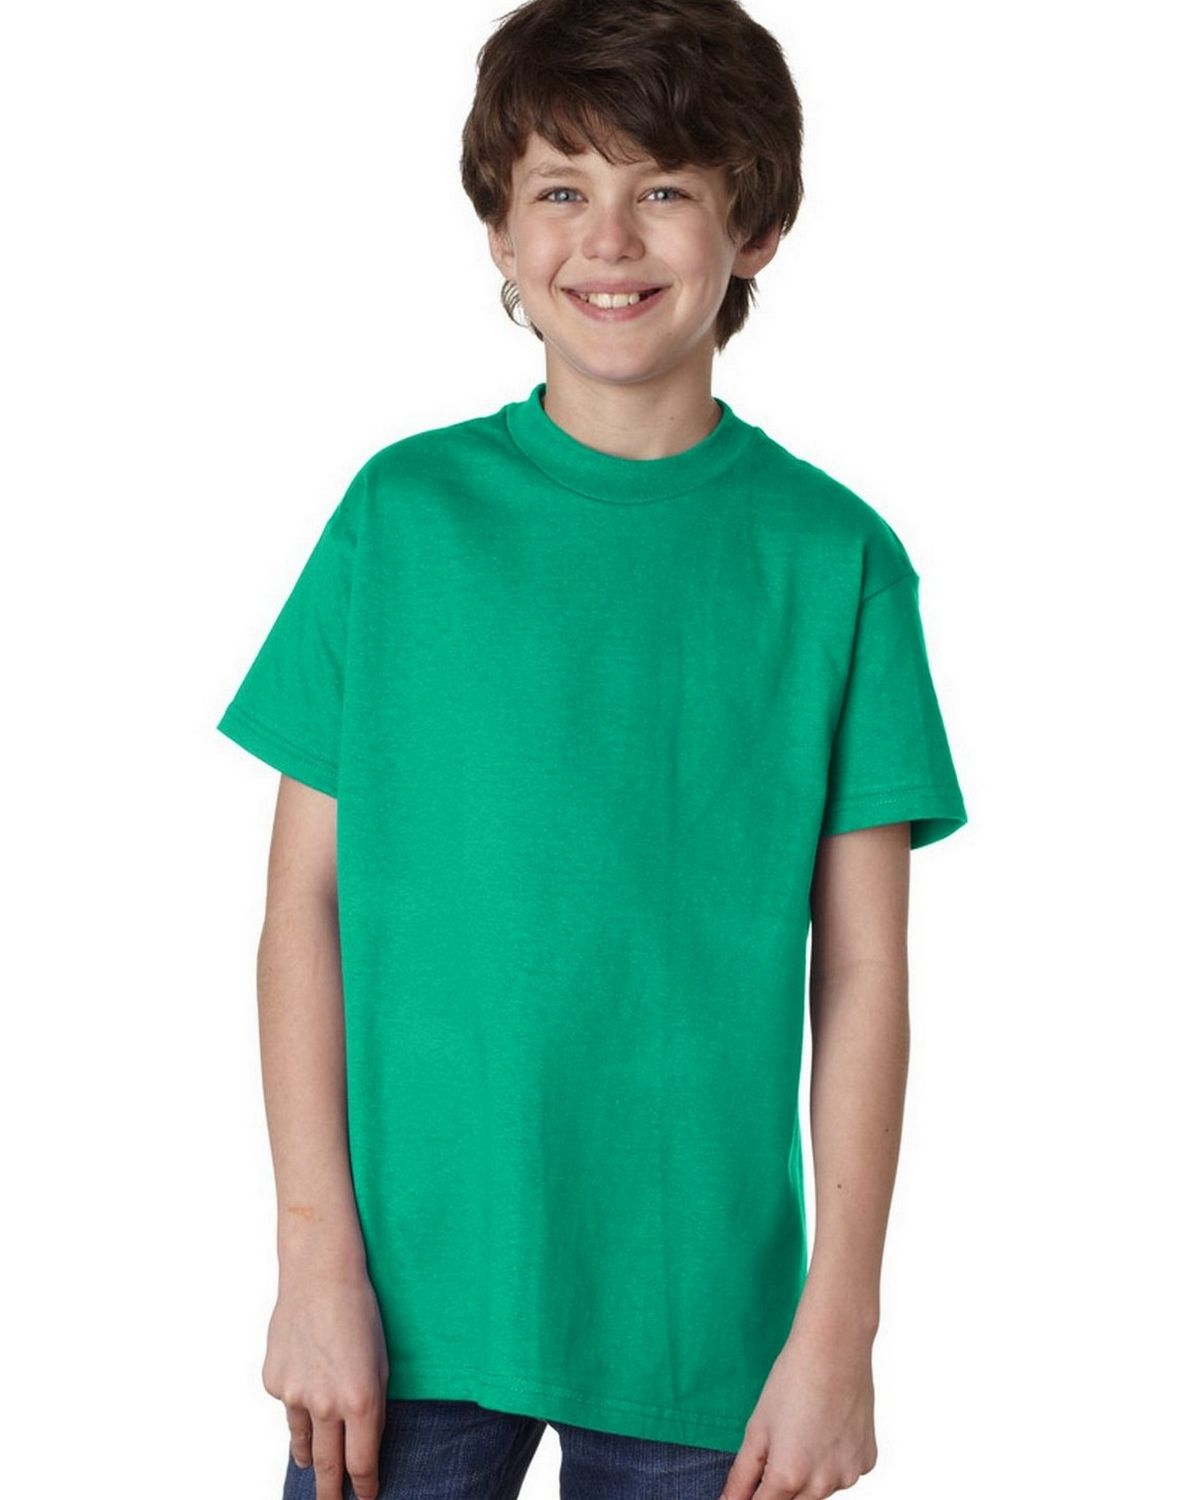 Hanes 5450 100% Youth Cotton Comfort Tee - Kelly - L 5450